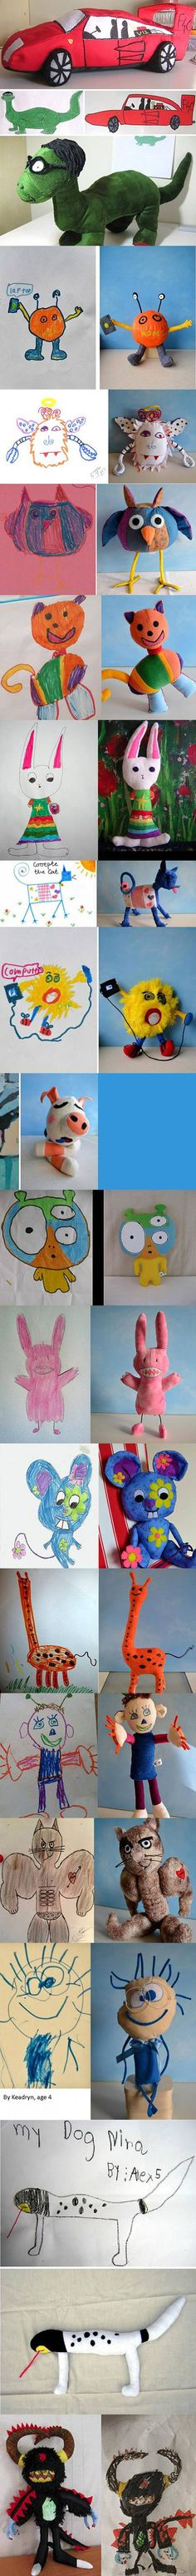 Child's Own Studio allows parents to submit their children's drawings, and receive a custom plush toy in return. Here are some of the adorable results…